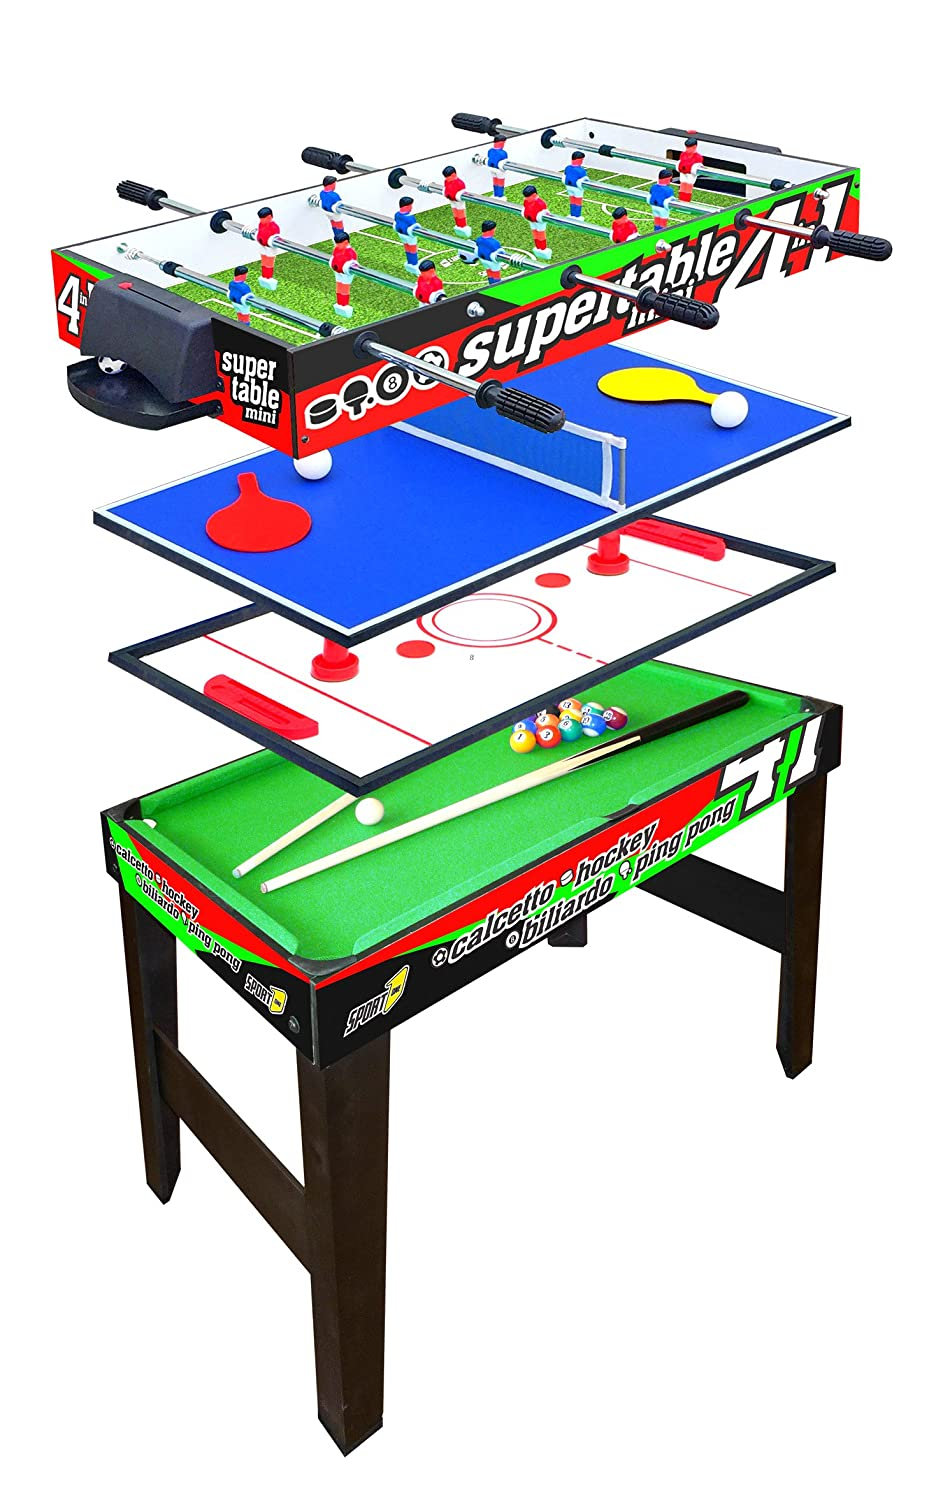 Tavolo Multigioco Sport One Mini Supertable - 4 Giochi in 1 SPORT ONE BY FORMA SRL